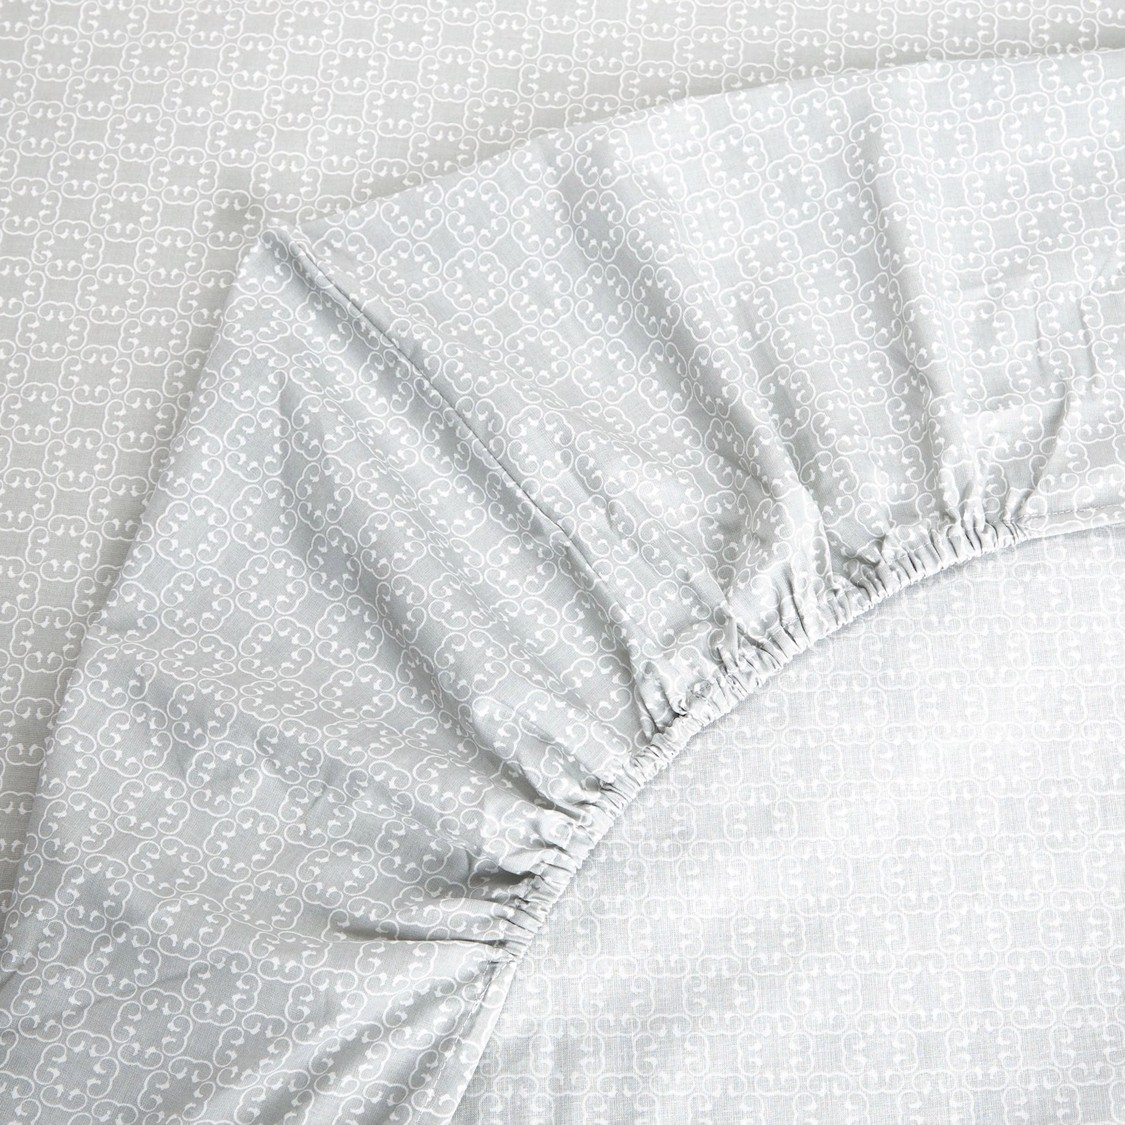 Printed King Size Fitted Sheet - 200x150 cms